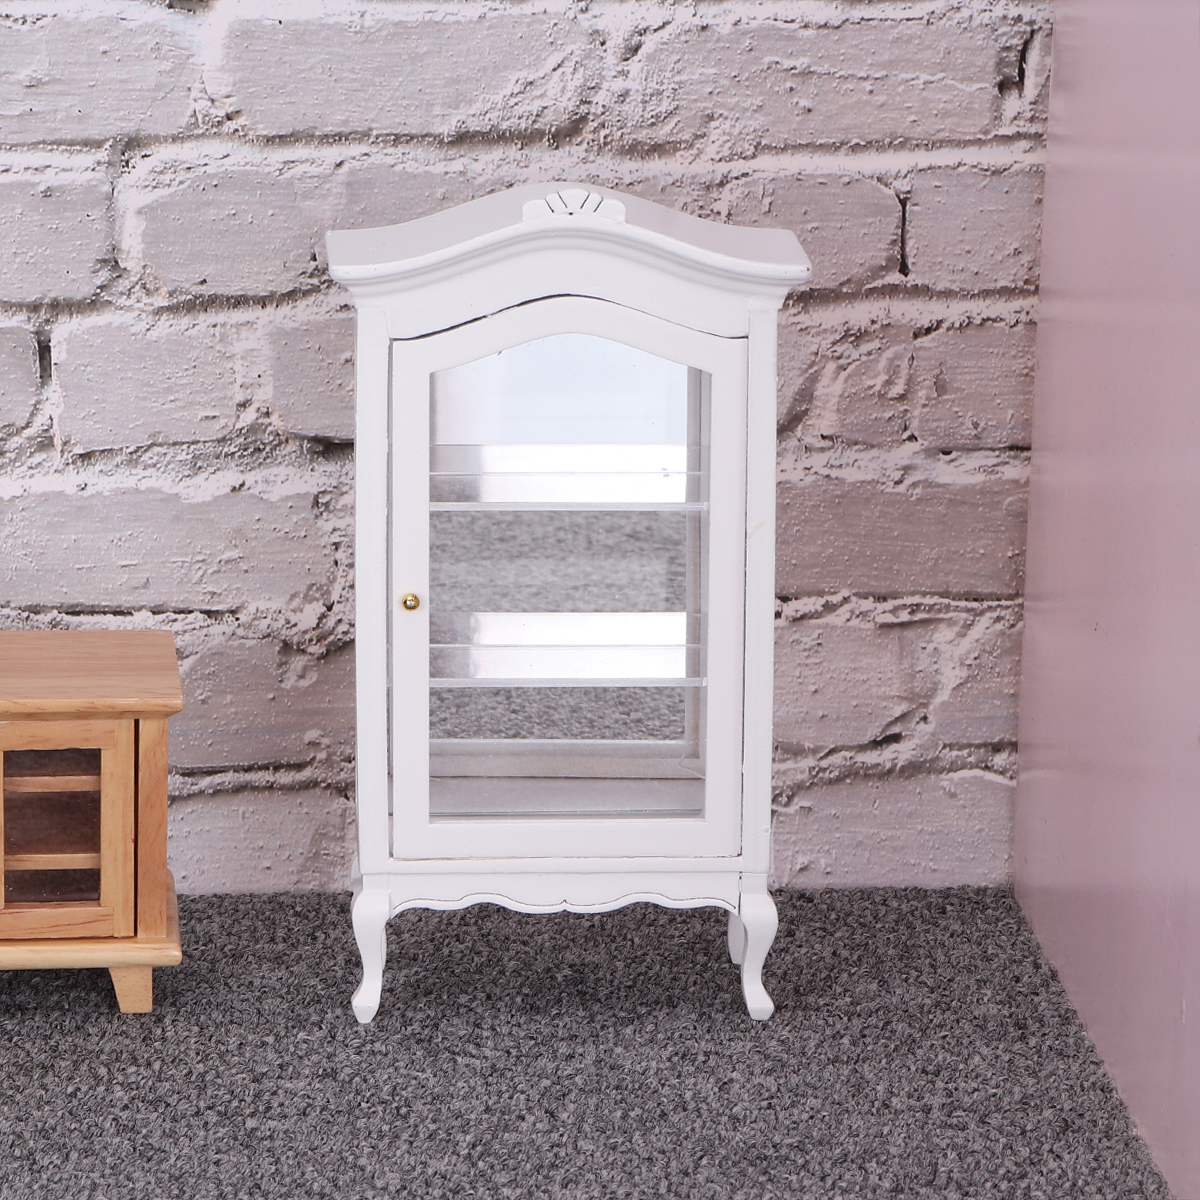 Dolls House Shelf With Miniature Toys for Children Room Doll Furniture 1:12